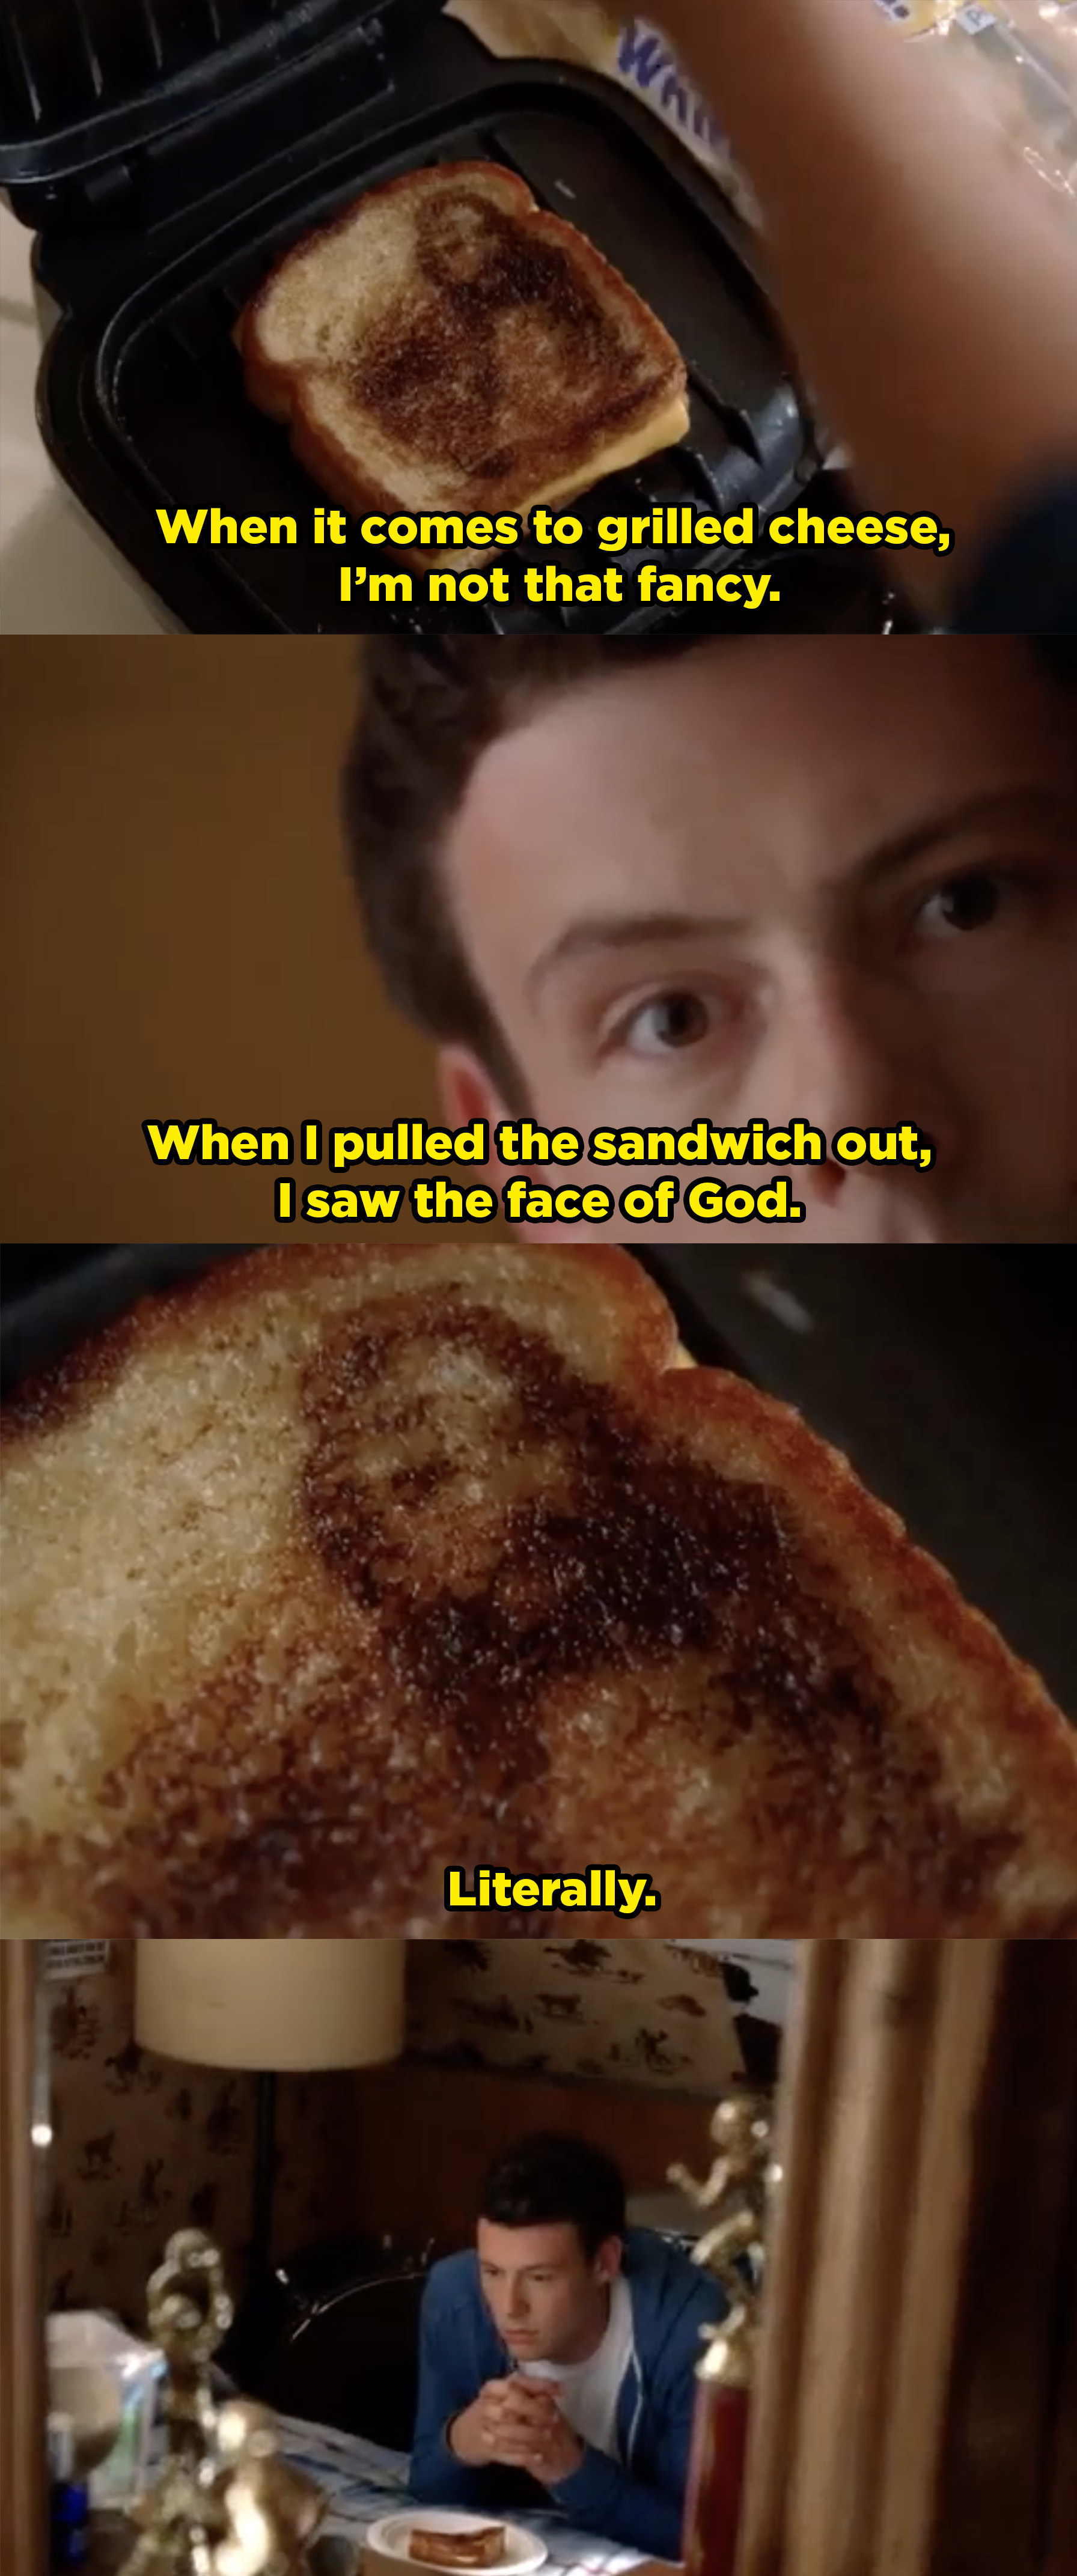 Finn praying to a grilled cheese that has a burn mark that looks like Jesus's face.